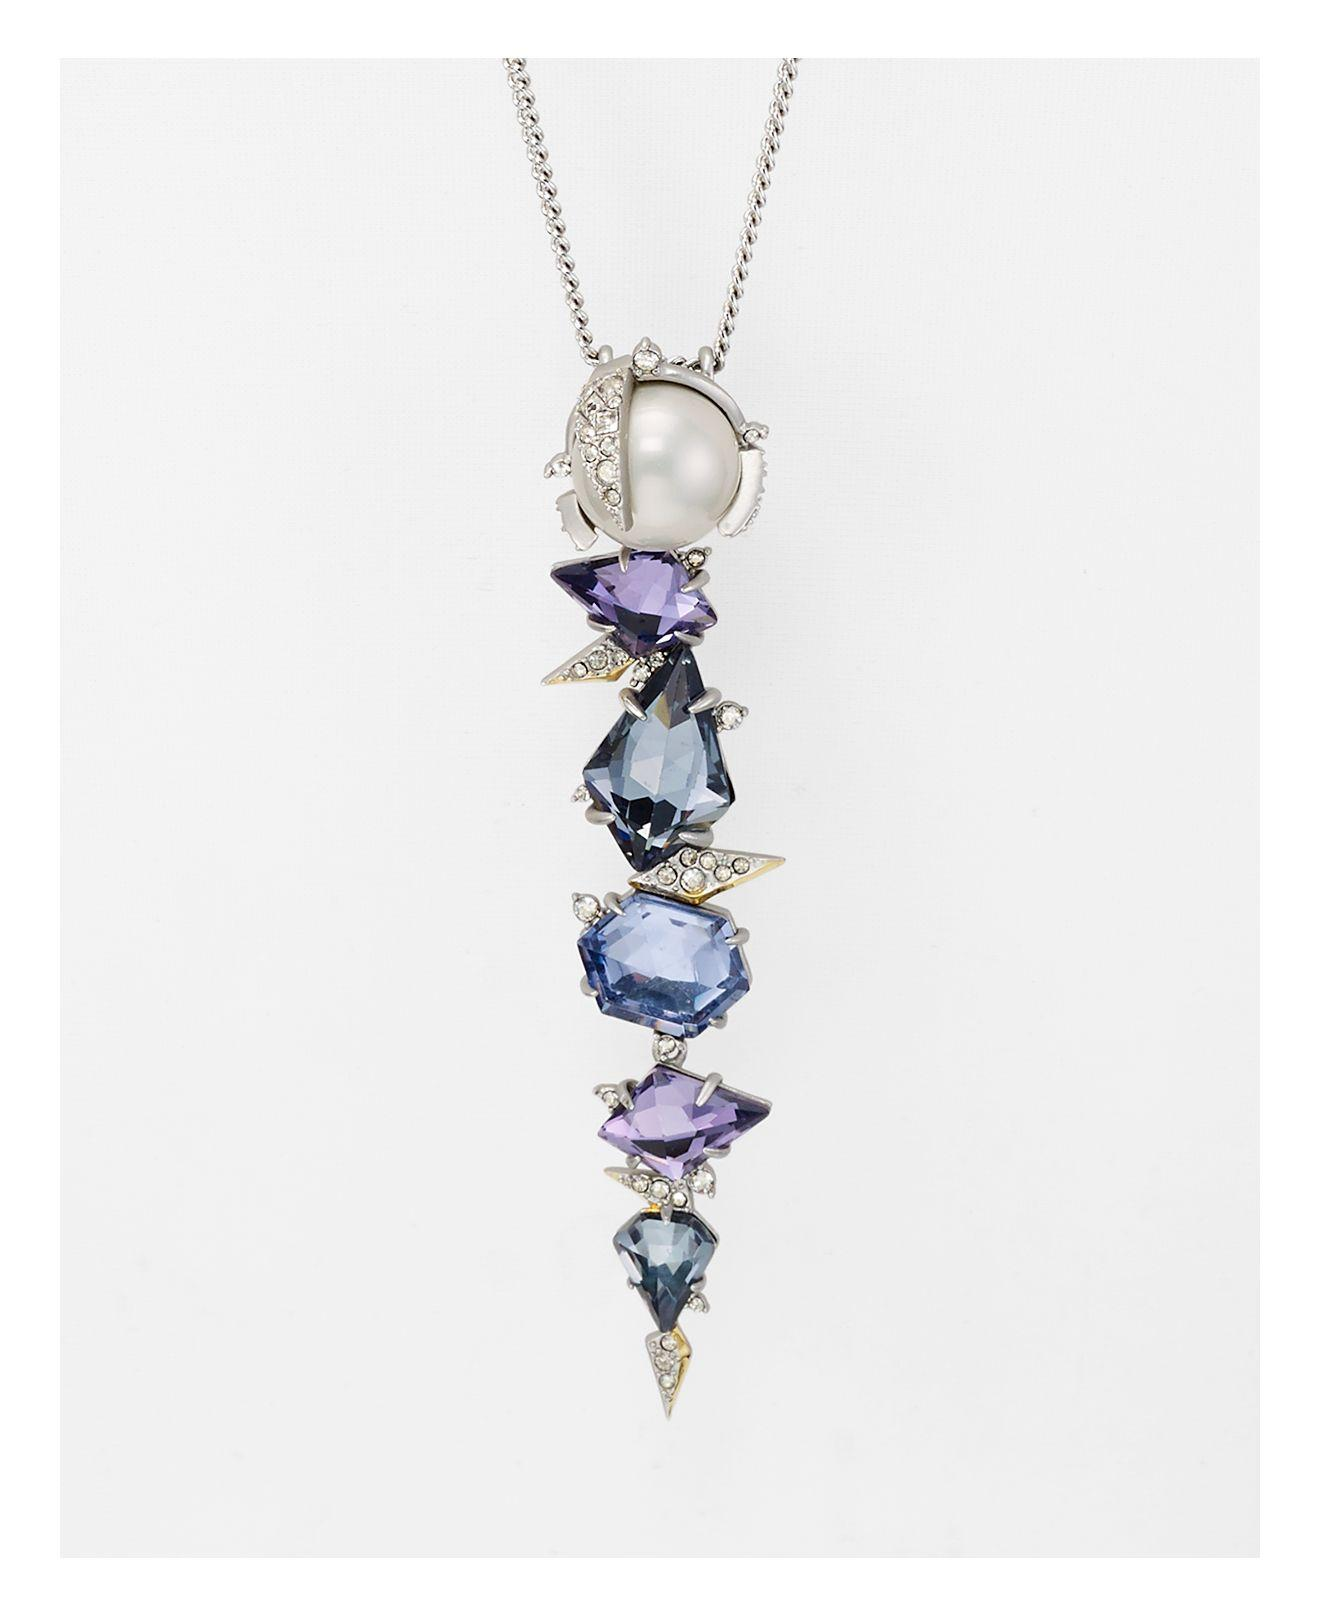 """Alexis Bittar Alexis Bitter Crystal Mosaic Lace Pendant Necklace, 31"""" in Silver (Metallic)"""